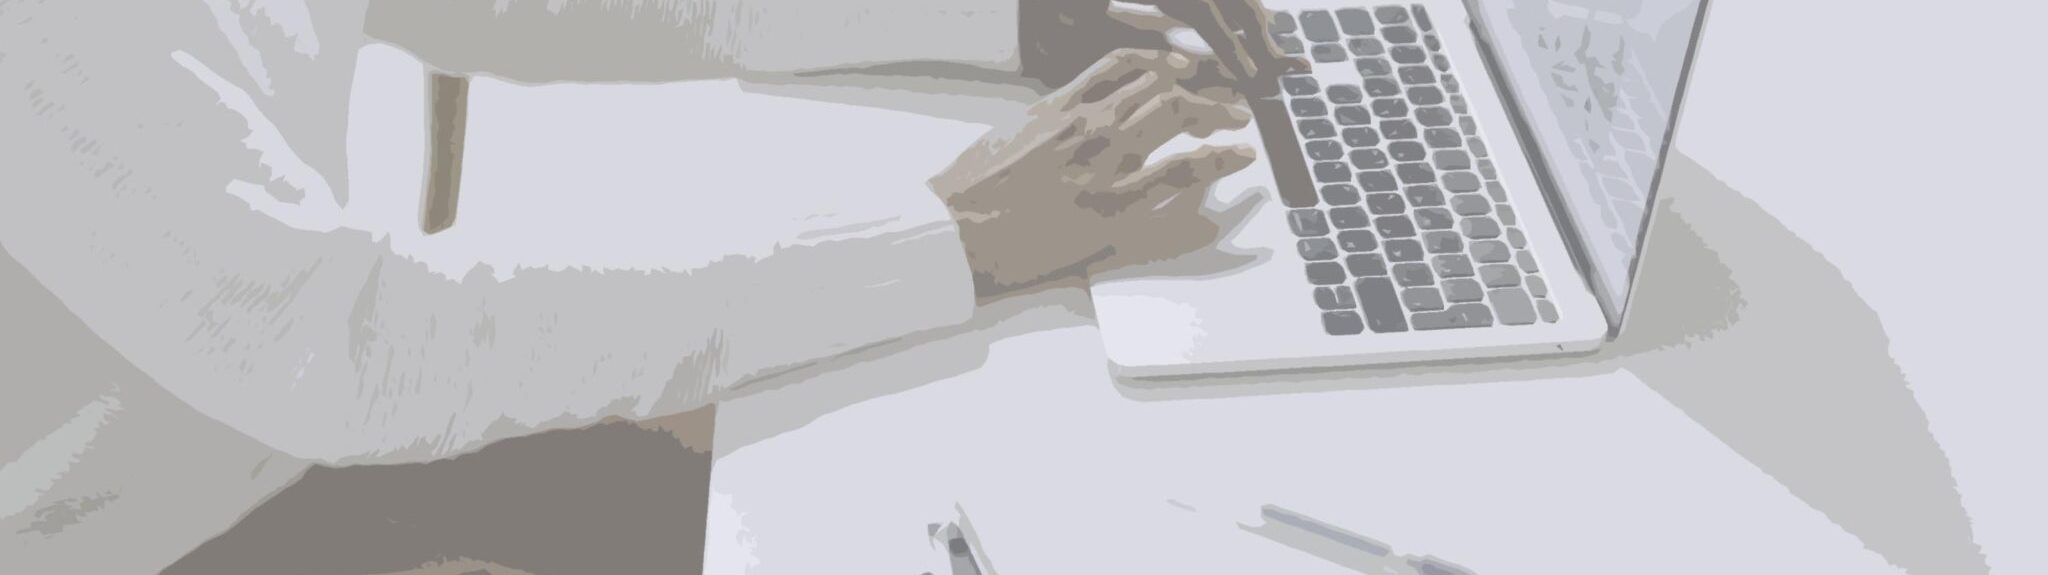 Person on laptop creating cybercrime strategy using RegTech in finance